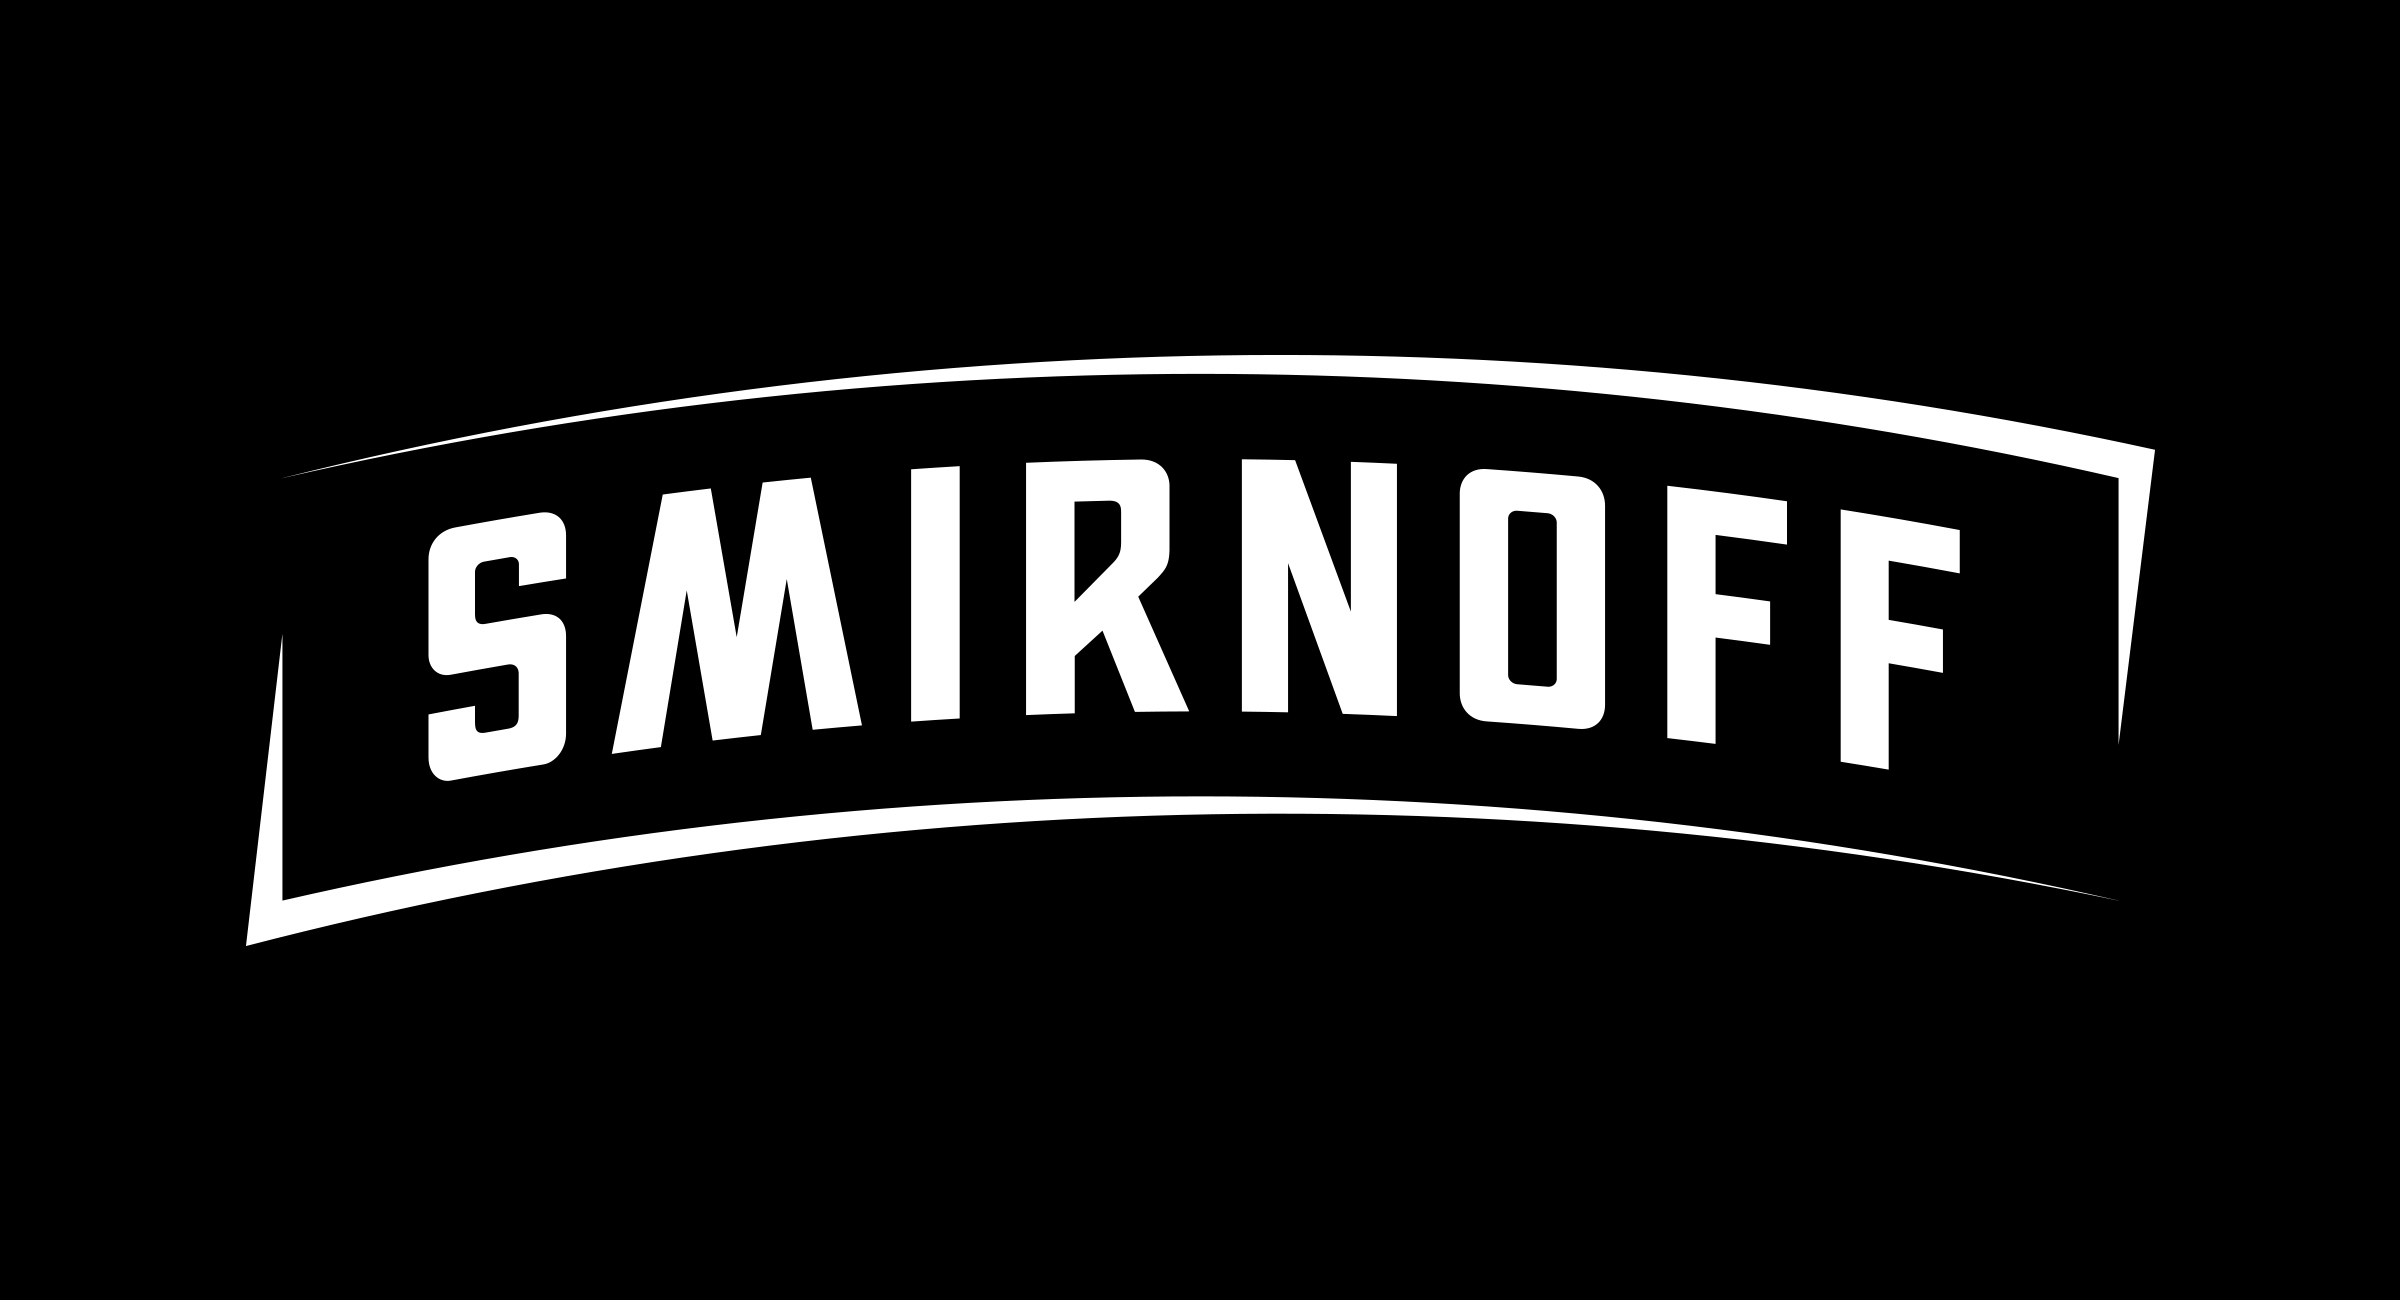 https://seeproductionservices.com/wp-content/uploads/2020/08/smirnoff_4.jpg